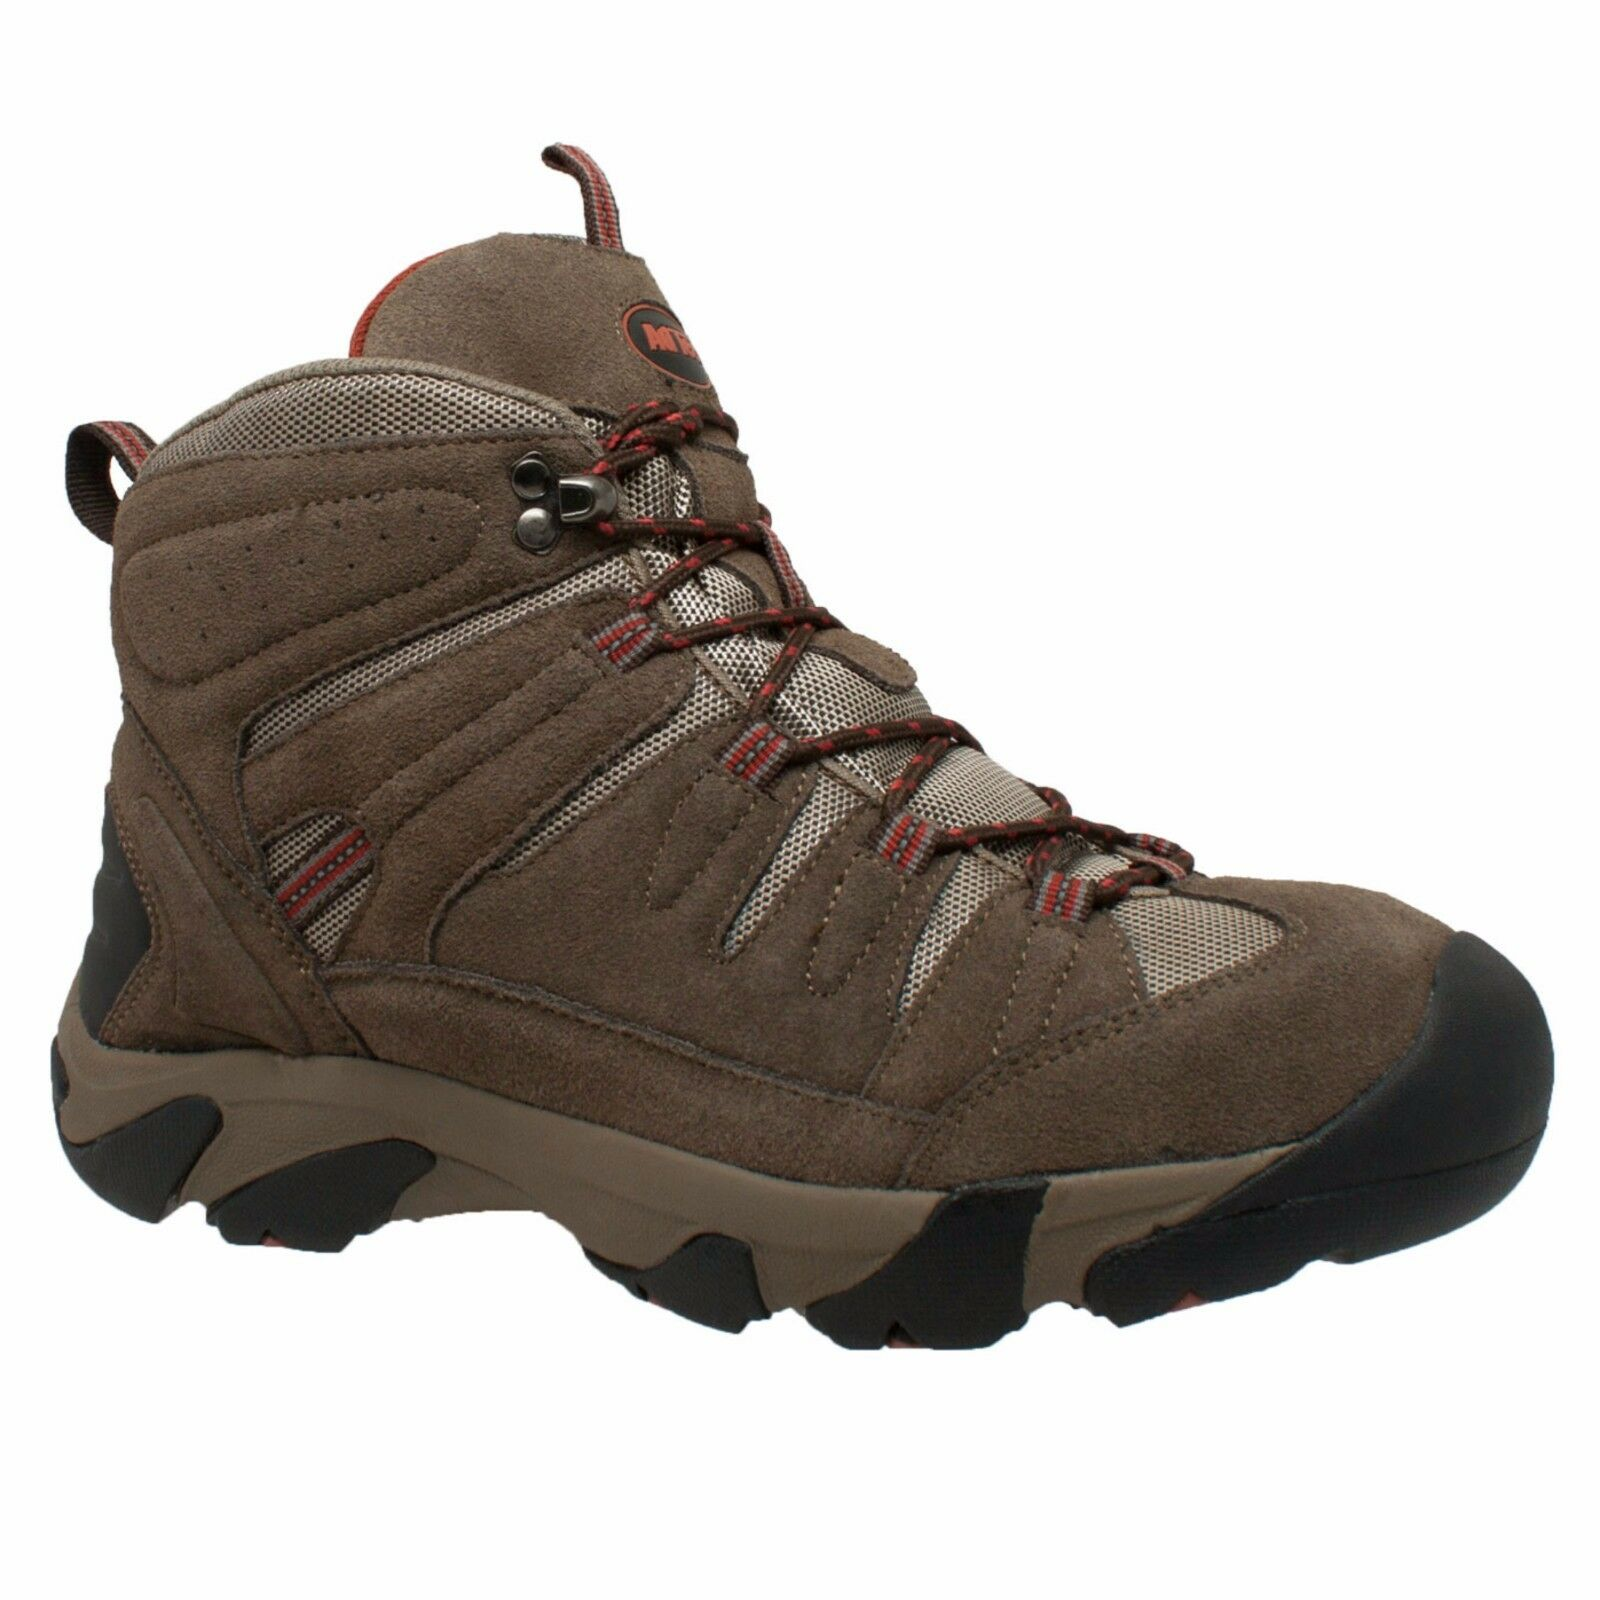 9640C AdTec Brown, Men's Waterproof Composite Toe Work Hiker Suede Leather Boot